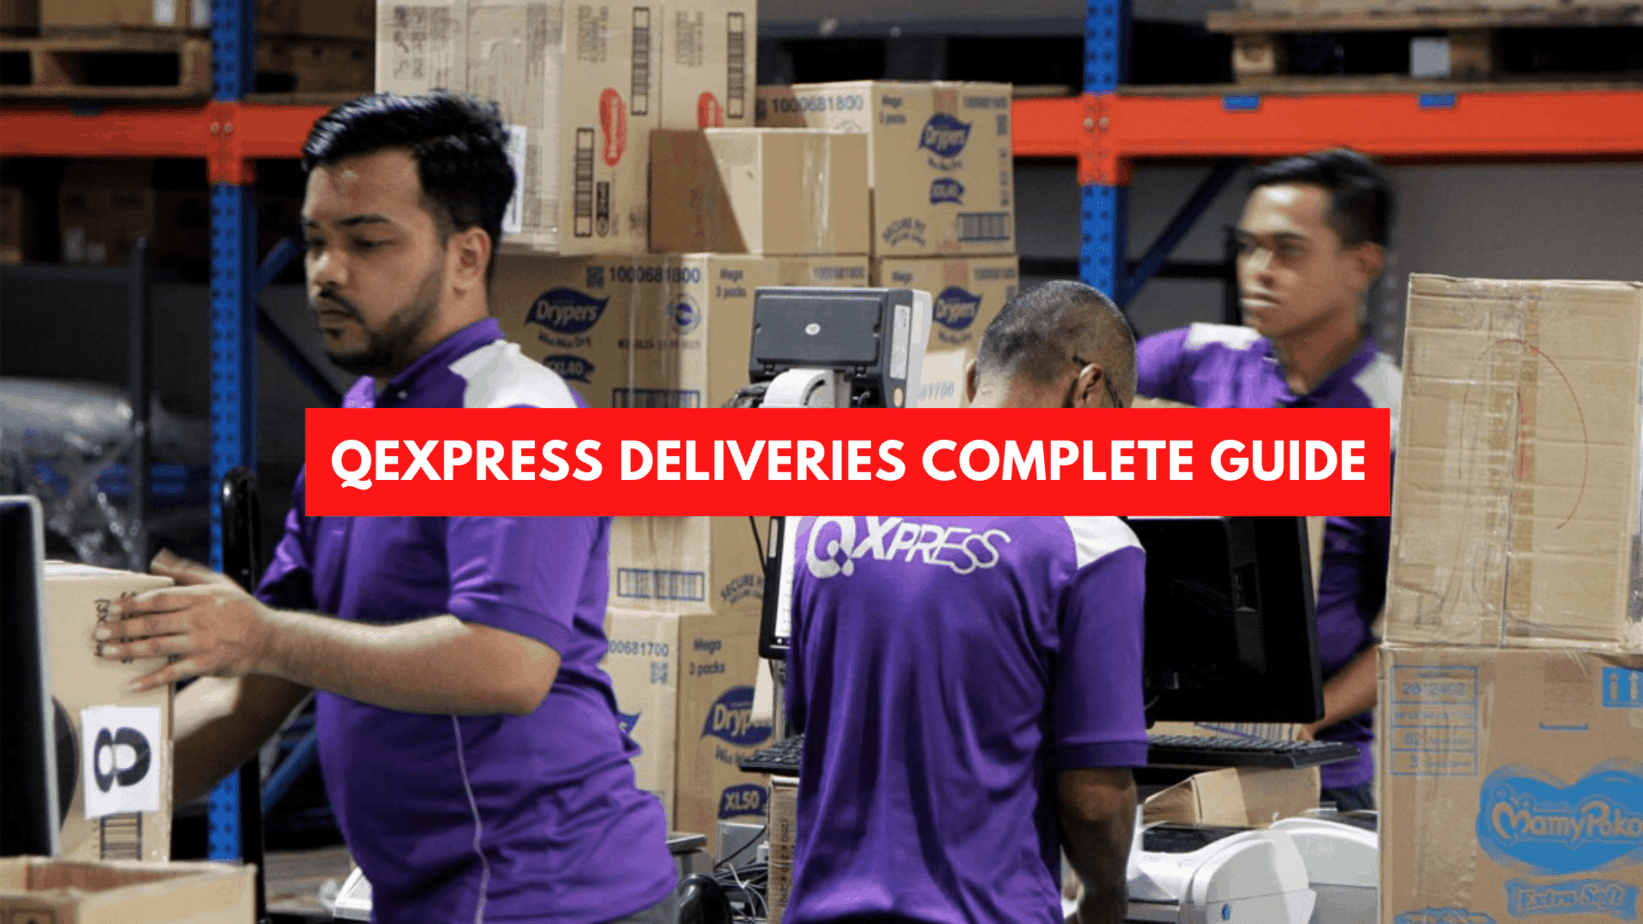 QExpress Deliveries Complete Guide June 2020